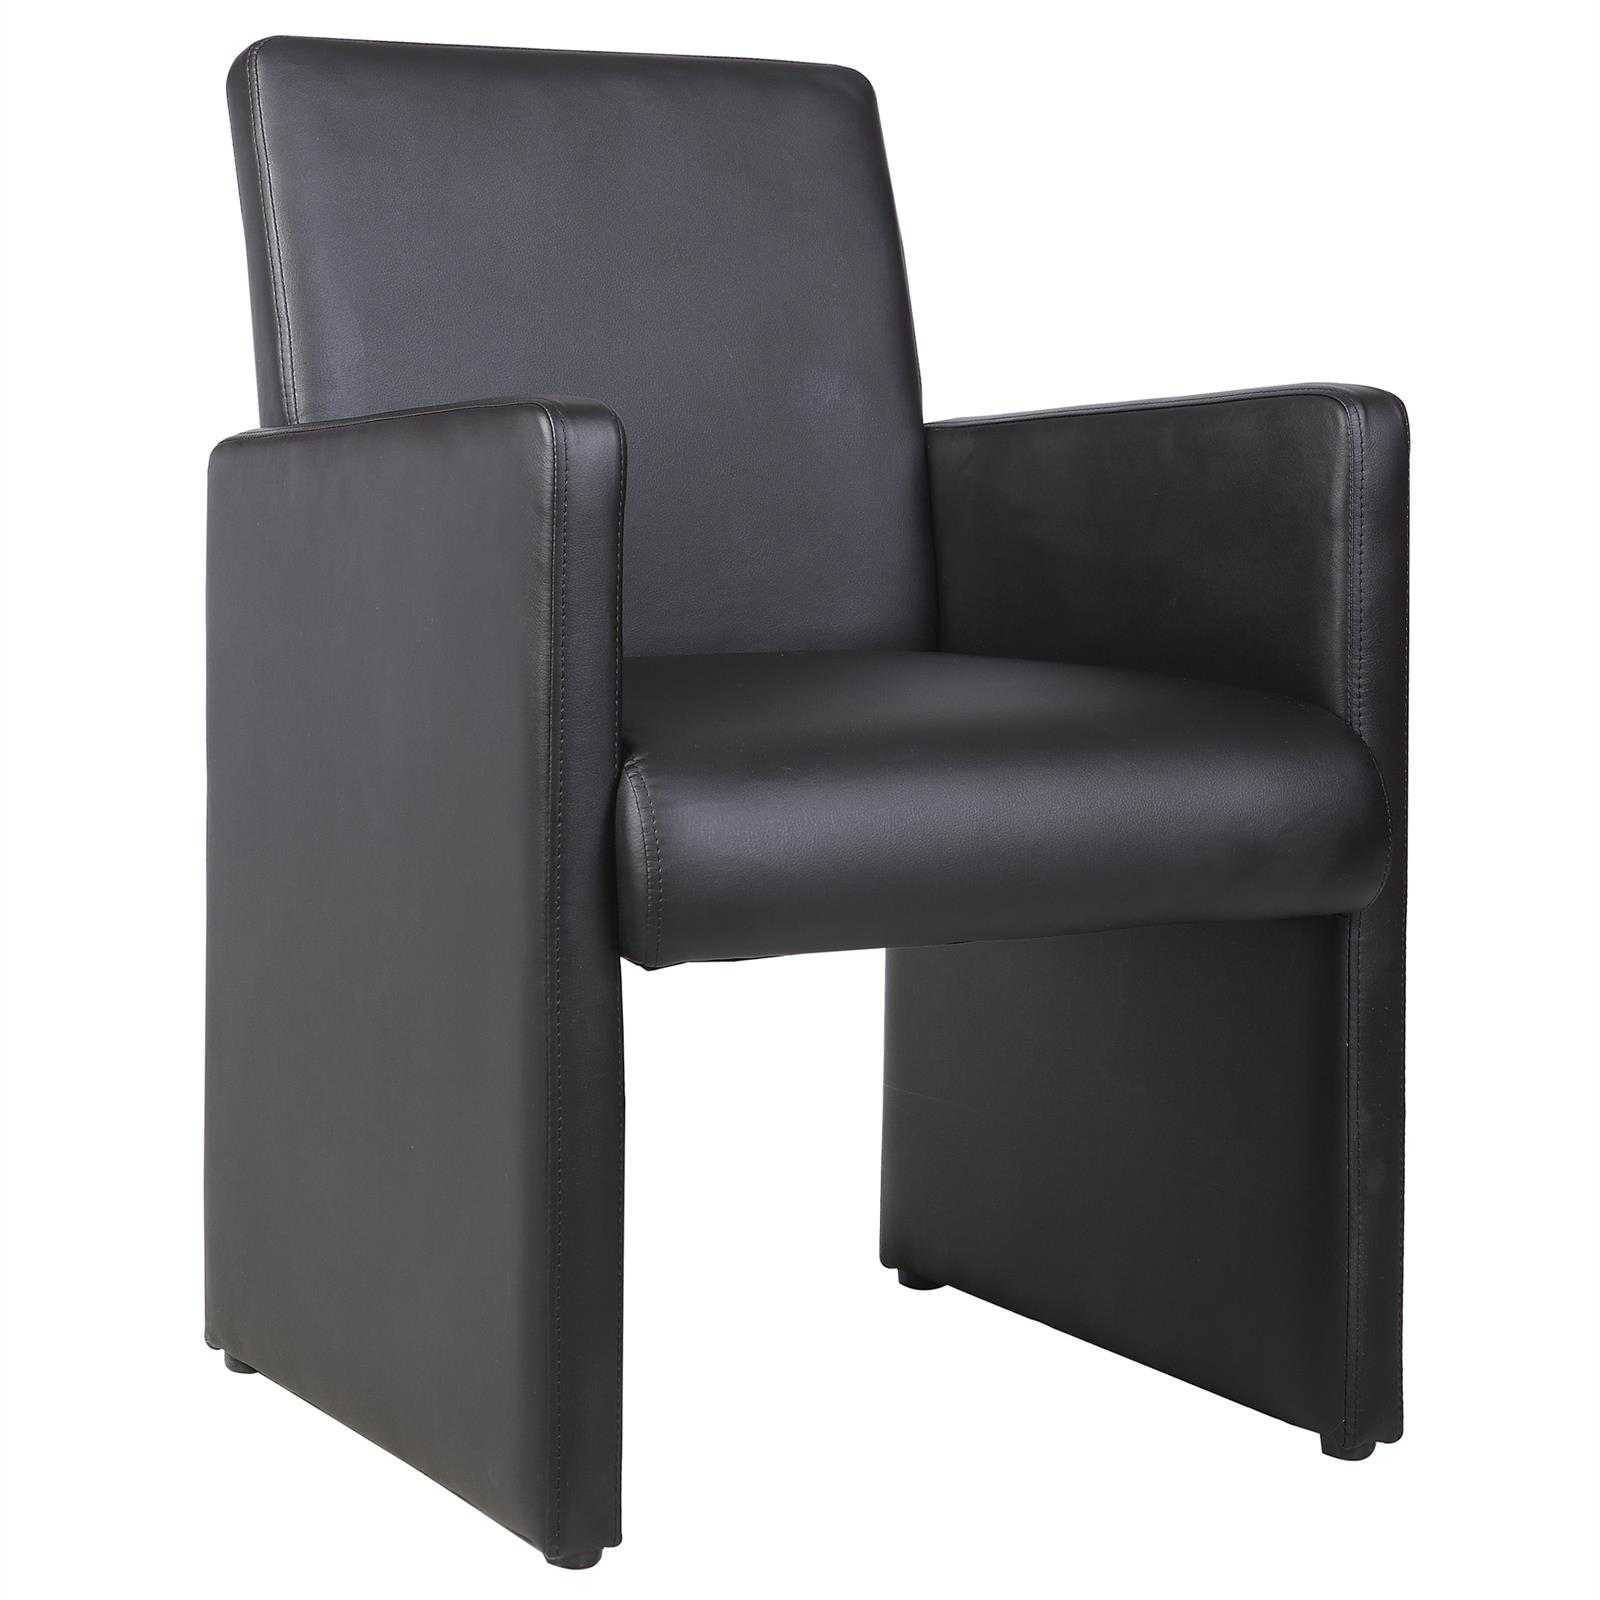 sessel hocker relaxsessel polstersessel in grau schwarz oder wei ebay. Black Bedroom Furniture Sets. Home Design Ideas